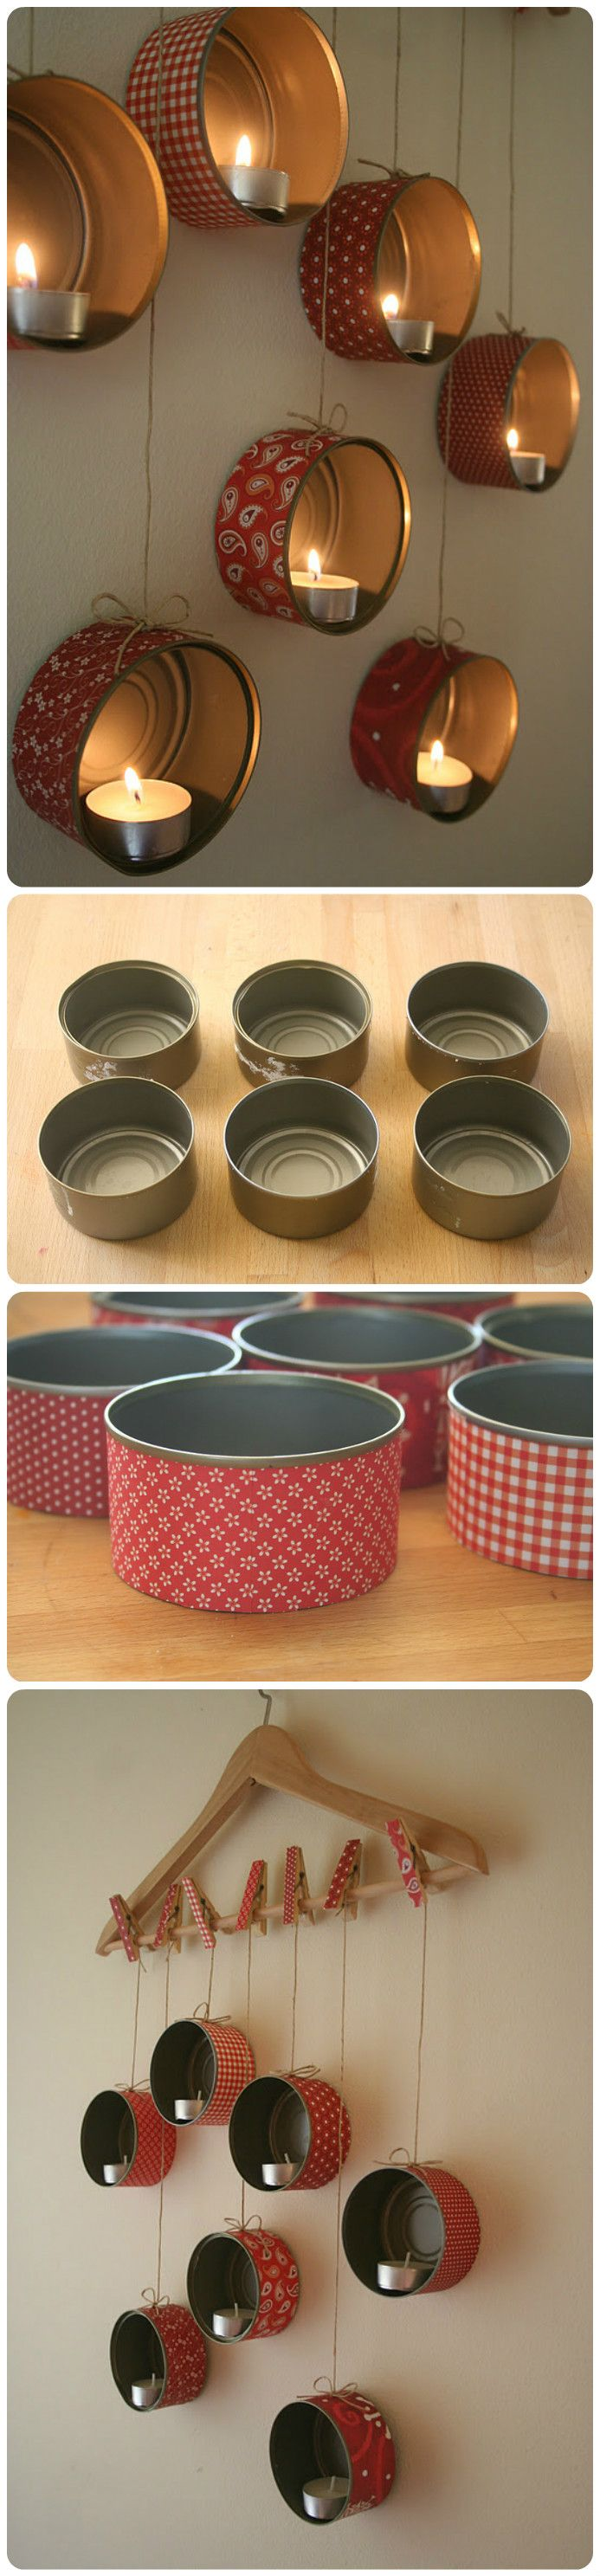 This is such a creative way of using old tins and revamping them into gorgeous candle holders!